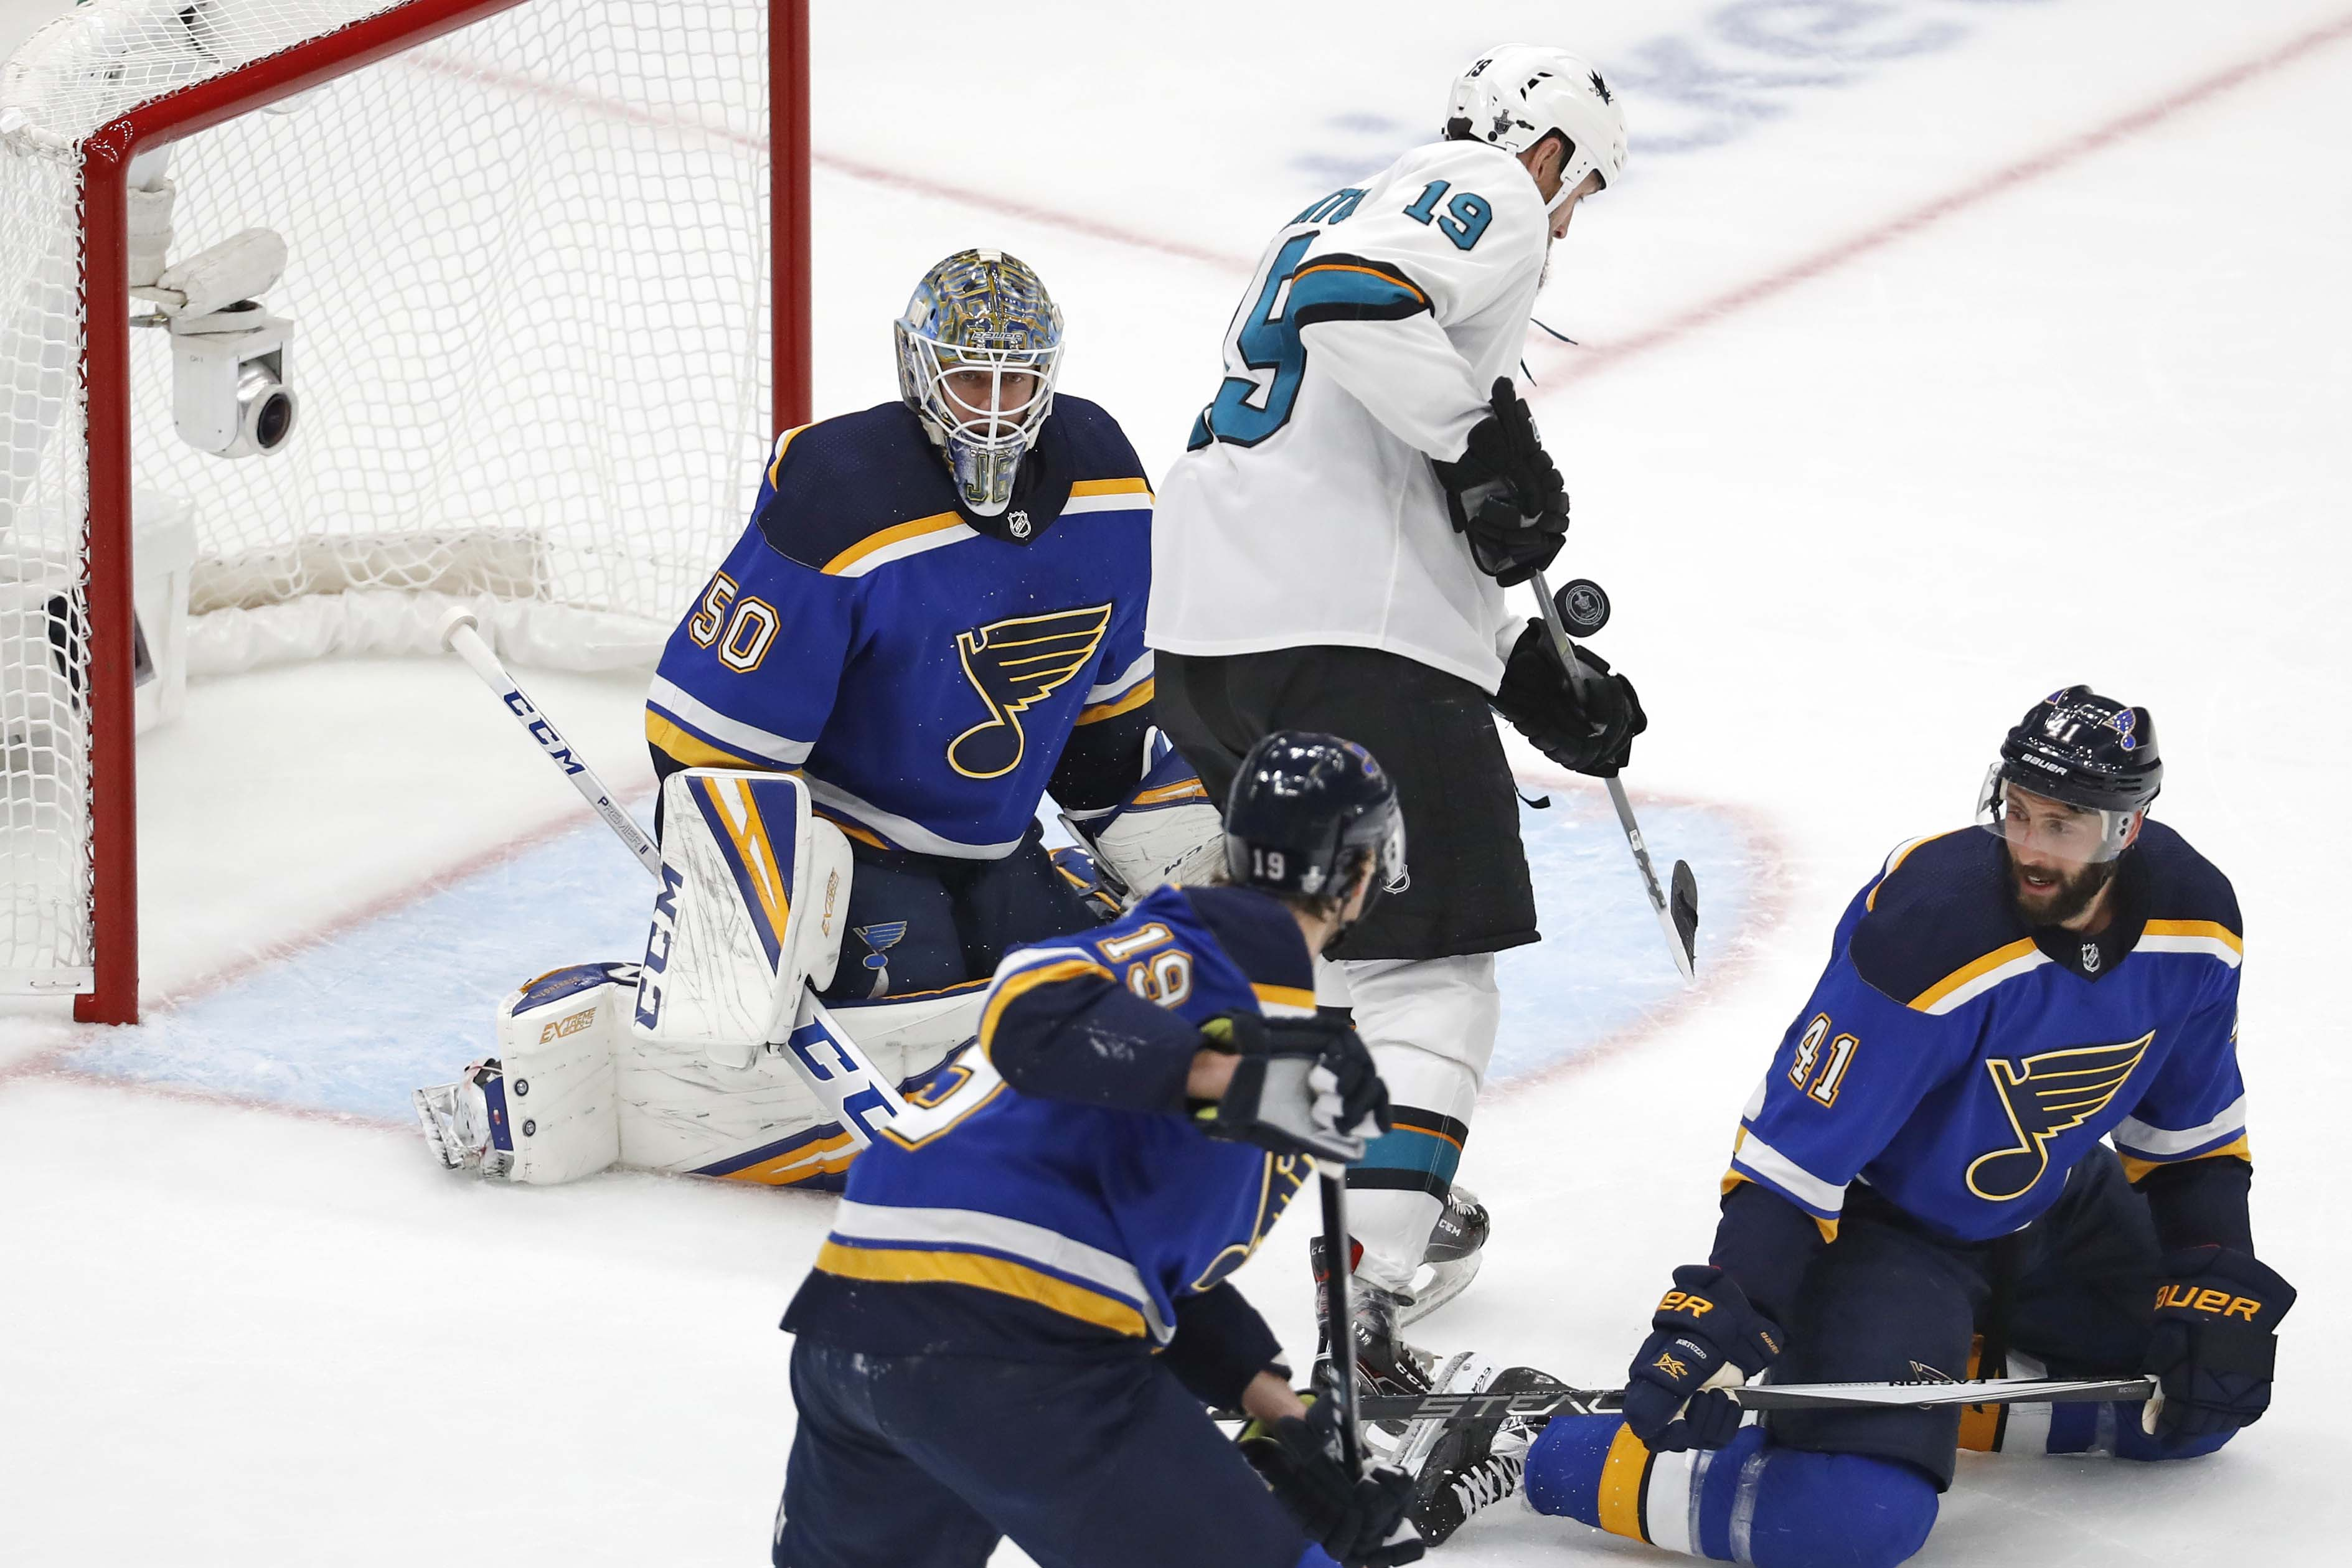 San Jose Sharks center Joe Thornton deflects a shot in front of St. Louis Blues goaltender Jordan Binnington as defenseman Jay Bouwmeester and defenseman Robert Bortuzzo look on during the first periodin game 3 of the Western Conference Final of the